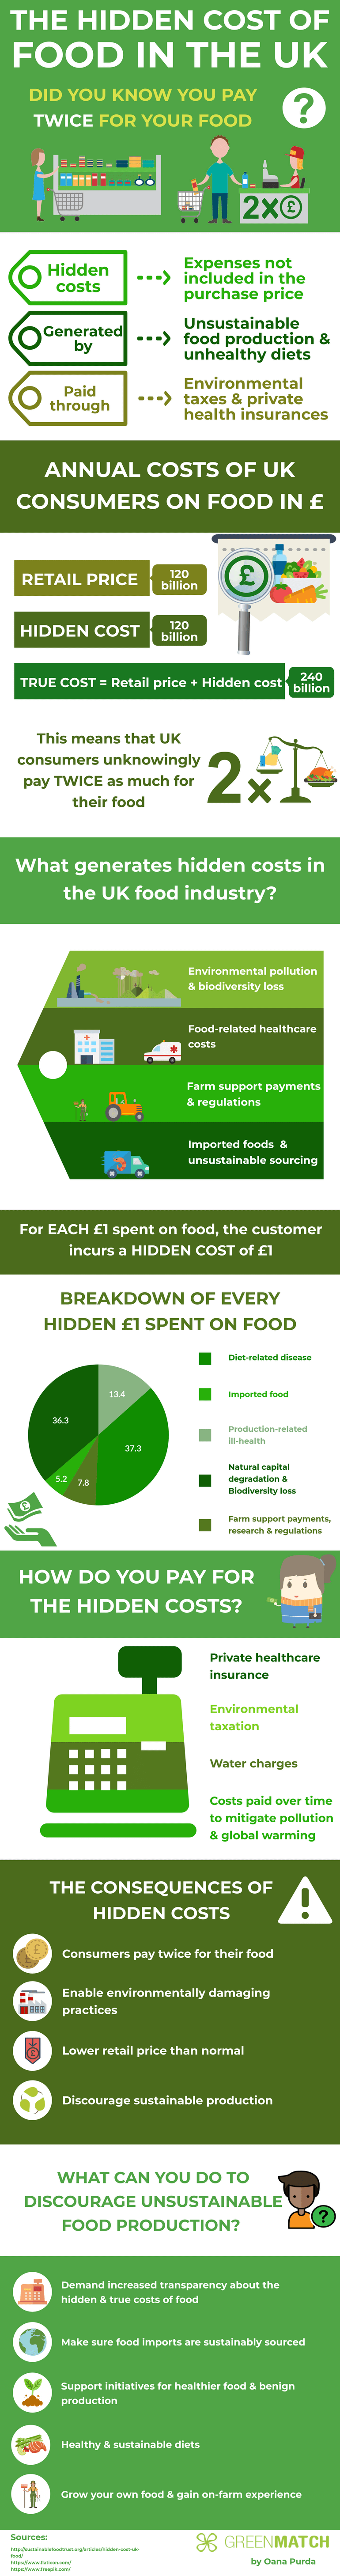 The Hidden Cost of Food in the UK Infographic